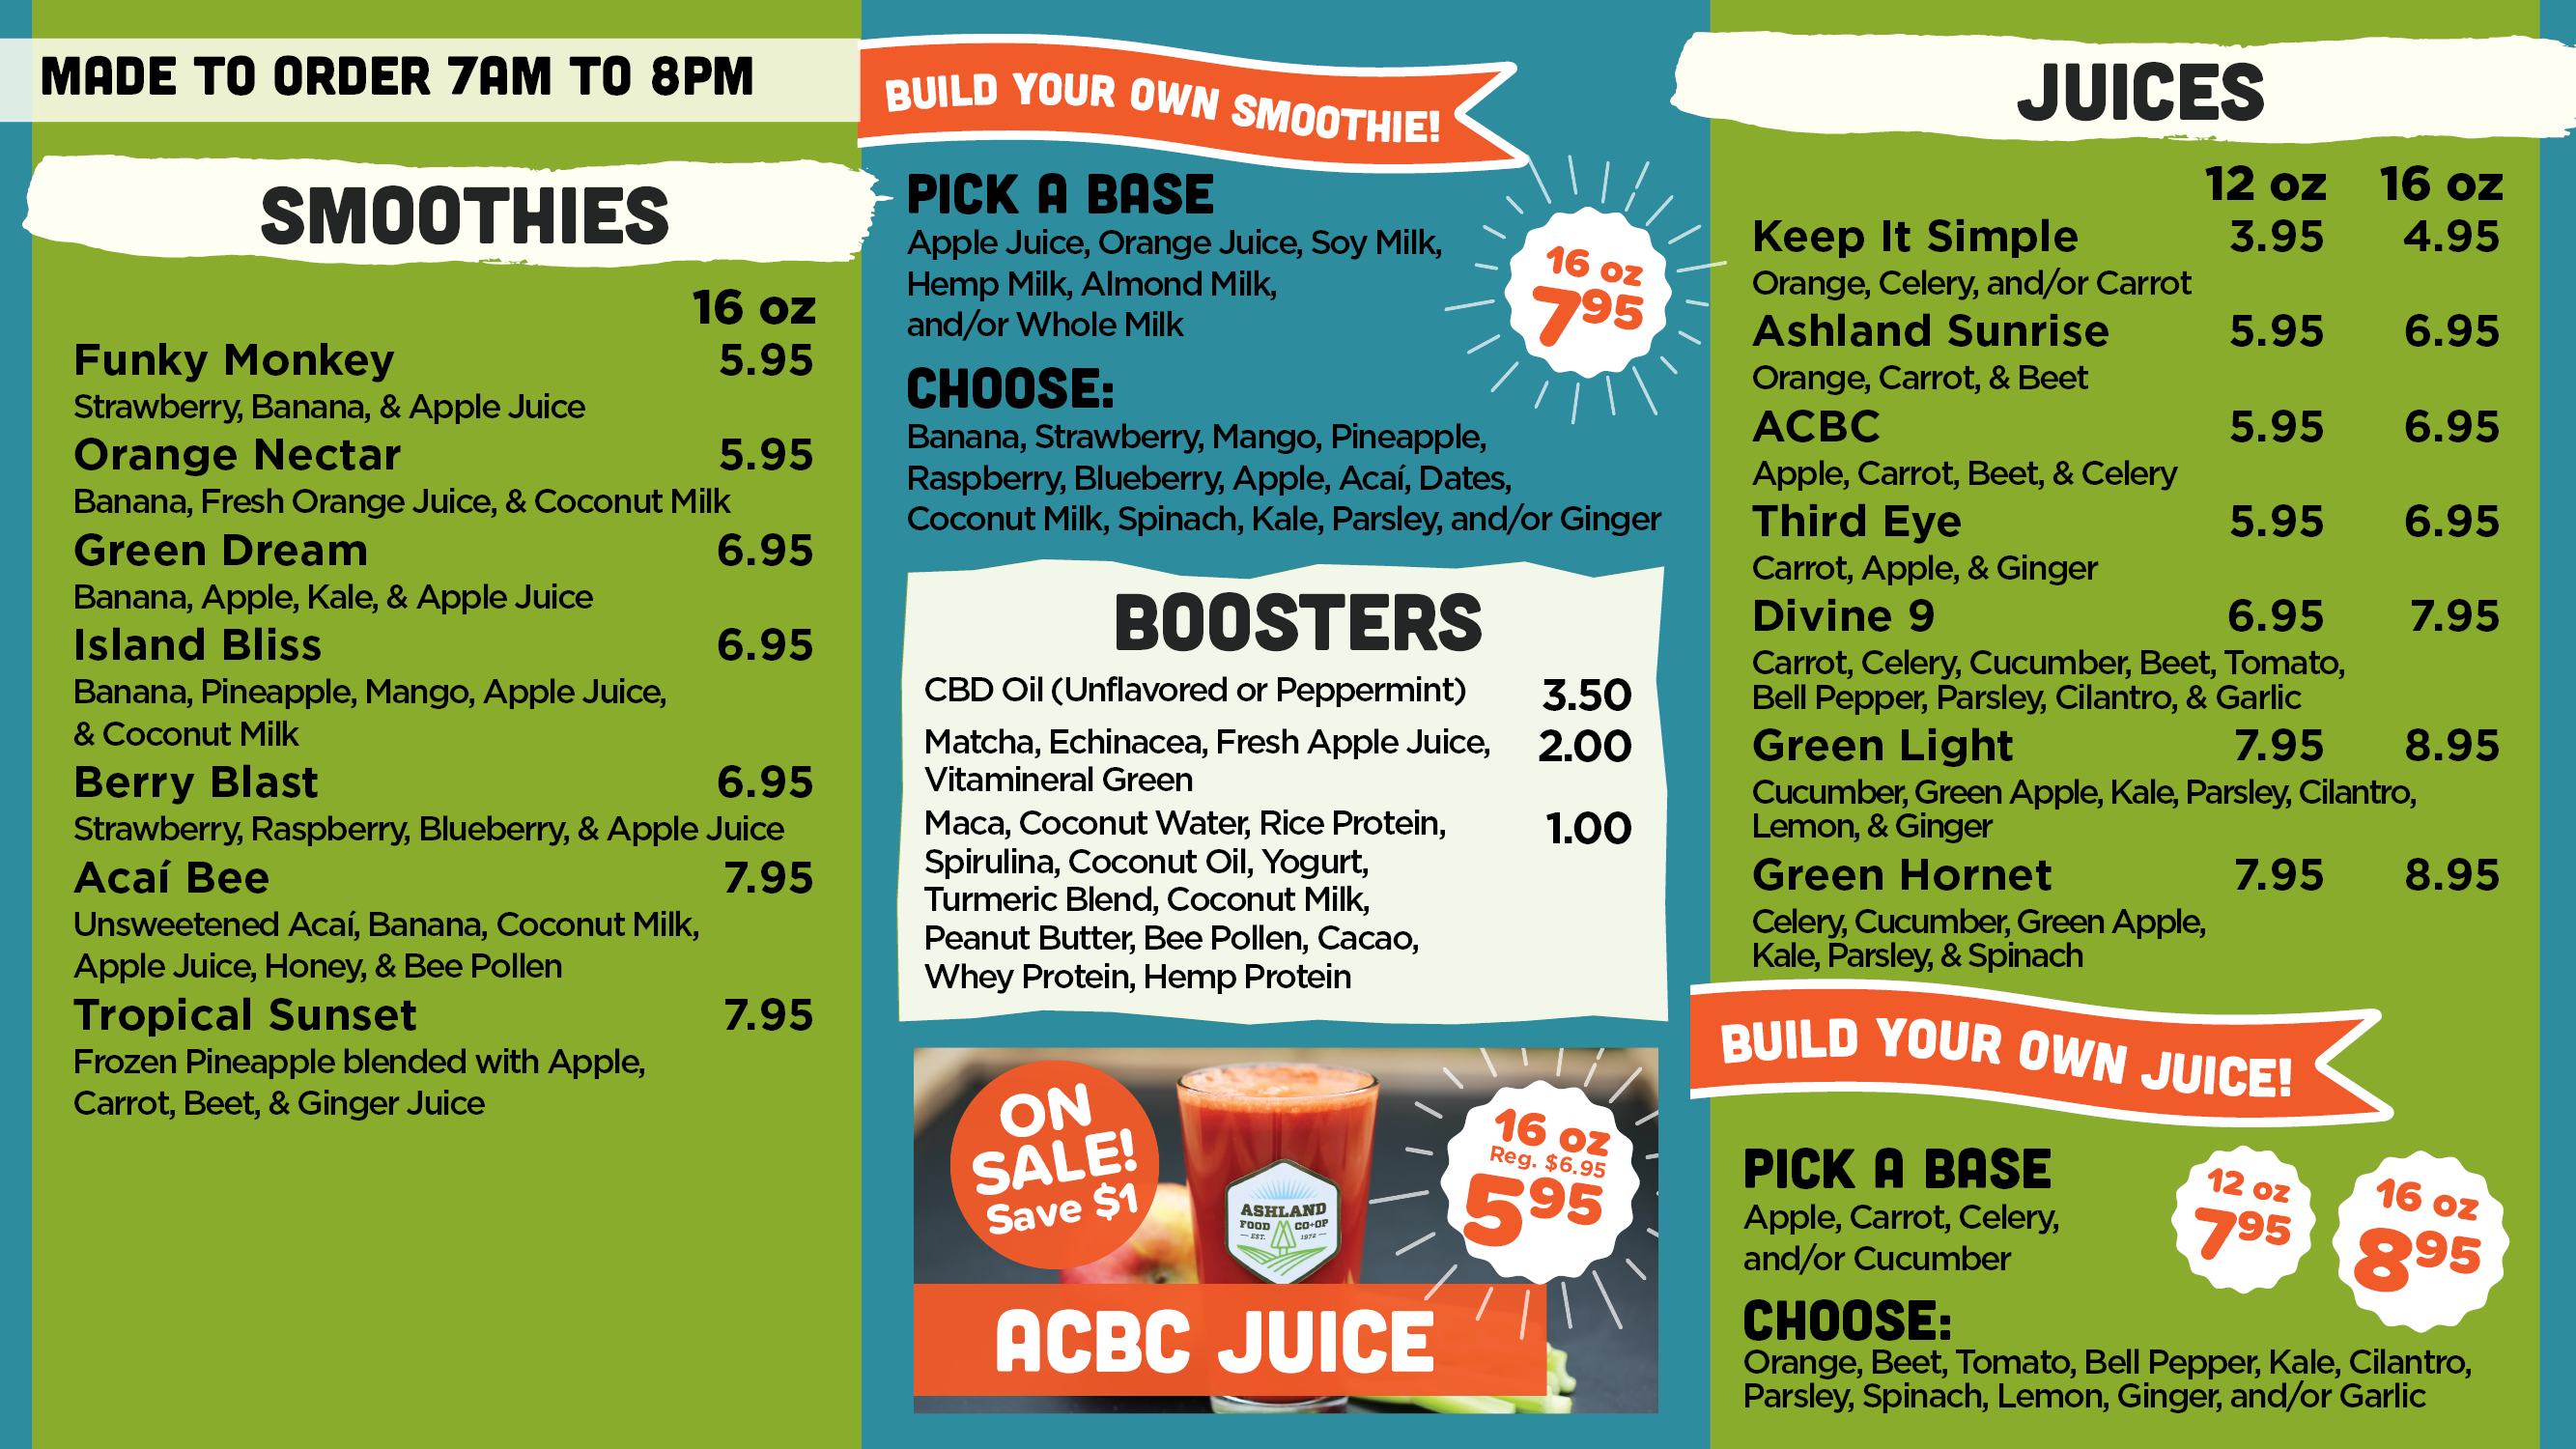 Co-op Kitchen smoothie & juice menu